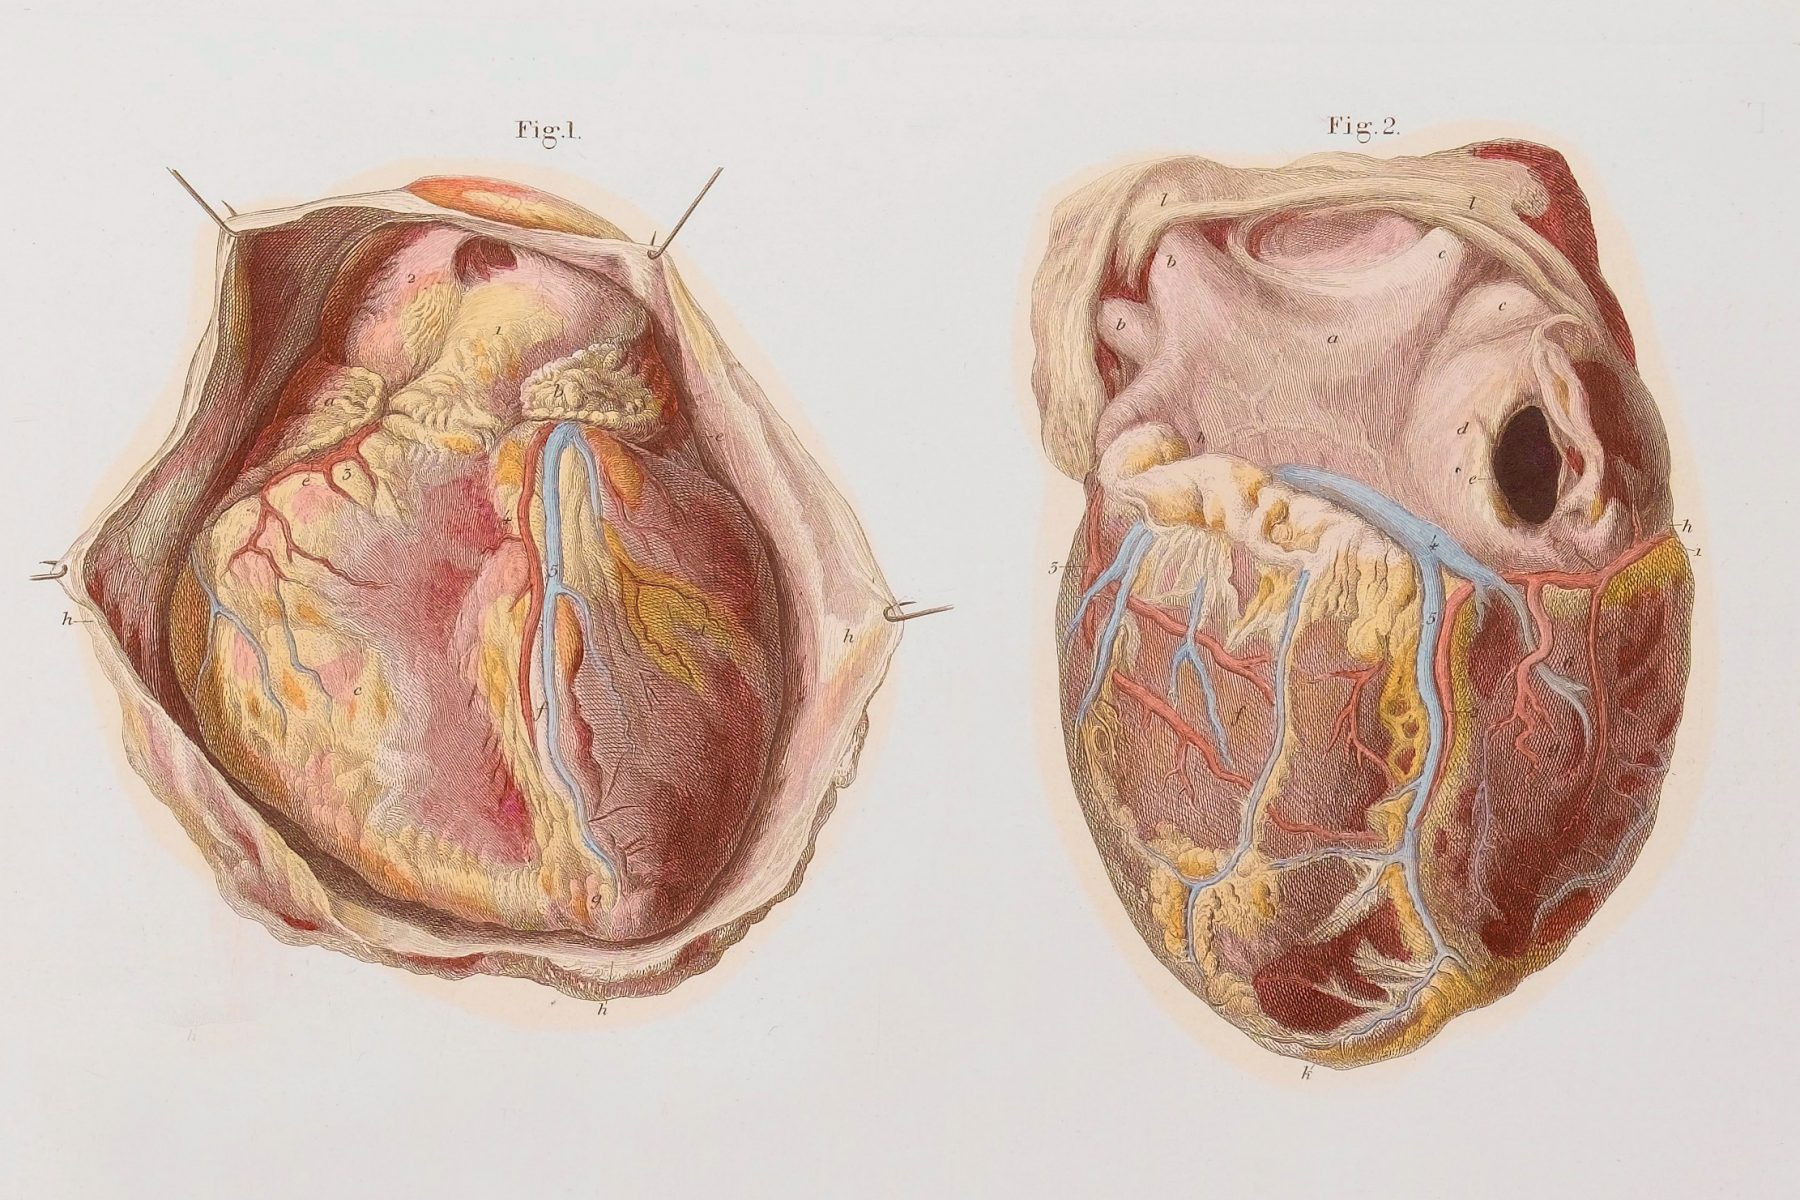 Two illustrations of the heart